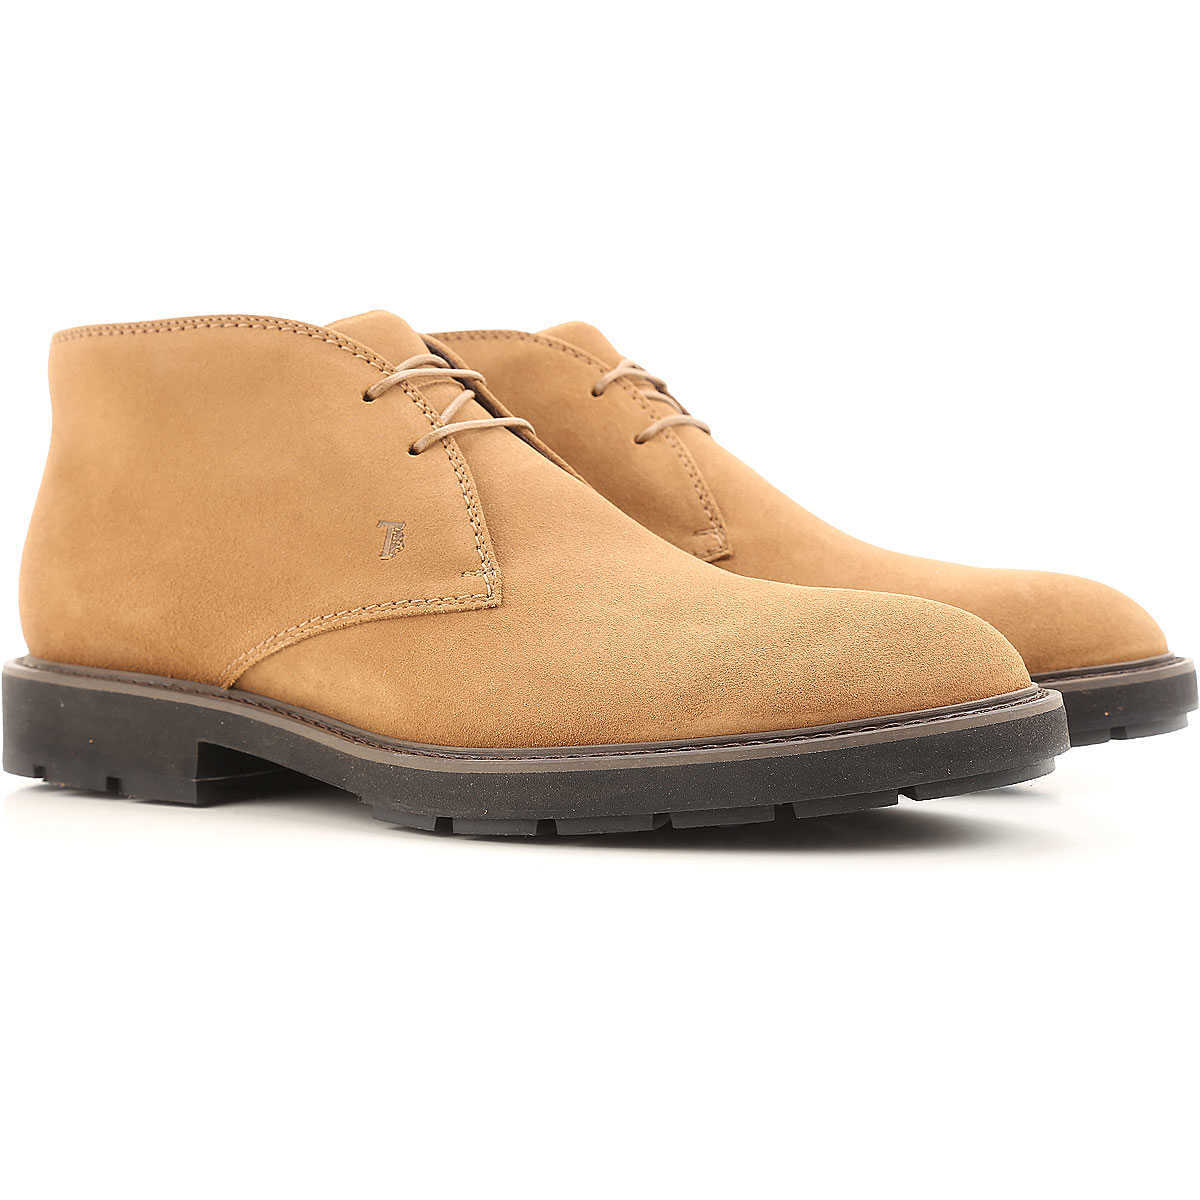 Tods Desert Boots Chukka for Men On Sale Biscuit DK - GOOFASH - Mens BOOTS